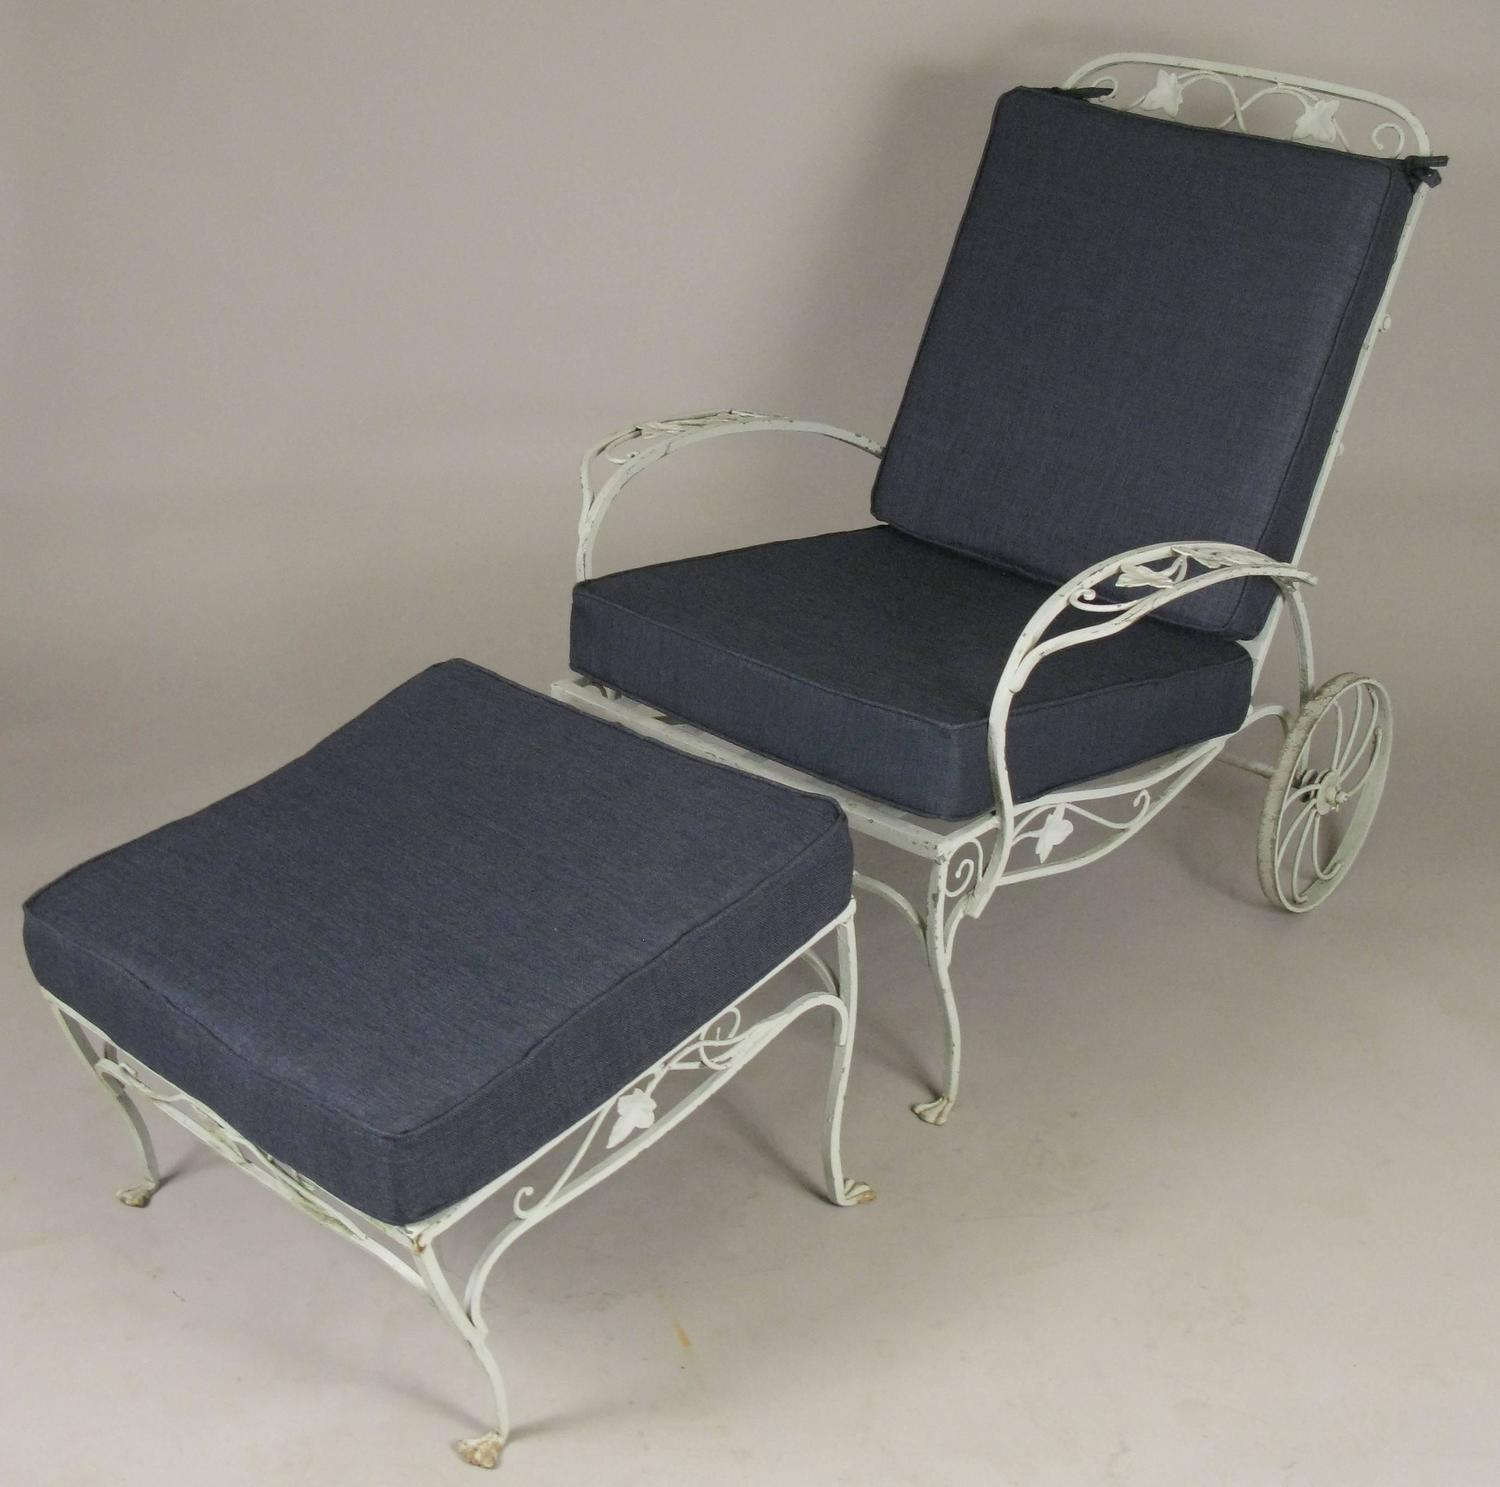 pair of vintage wrought iron adjustable lounge chairs and ottomans by salterini for sale at 1stdibs. Black Bedroom Furniture Sets. Home Design Ideas